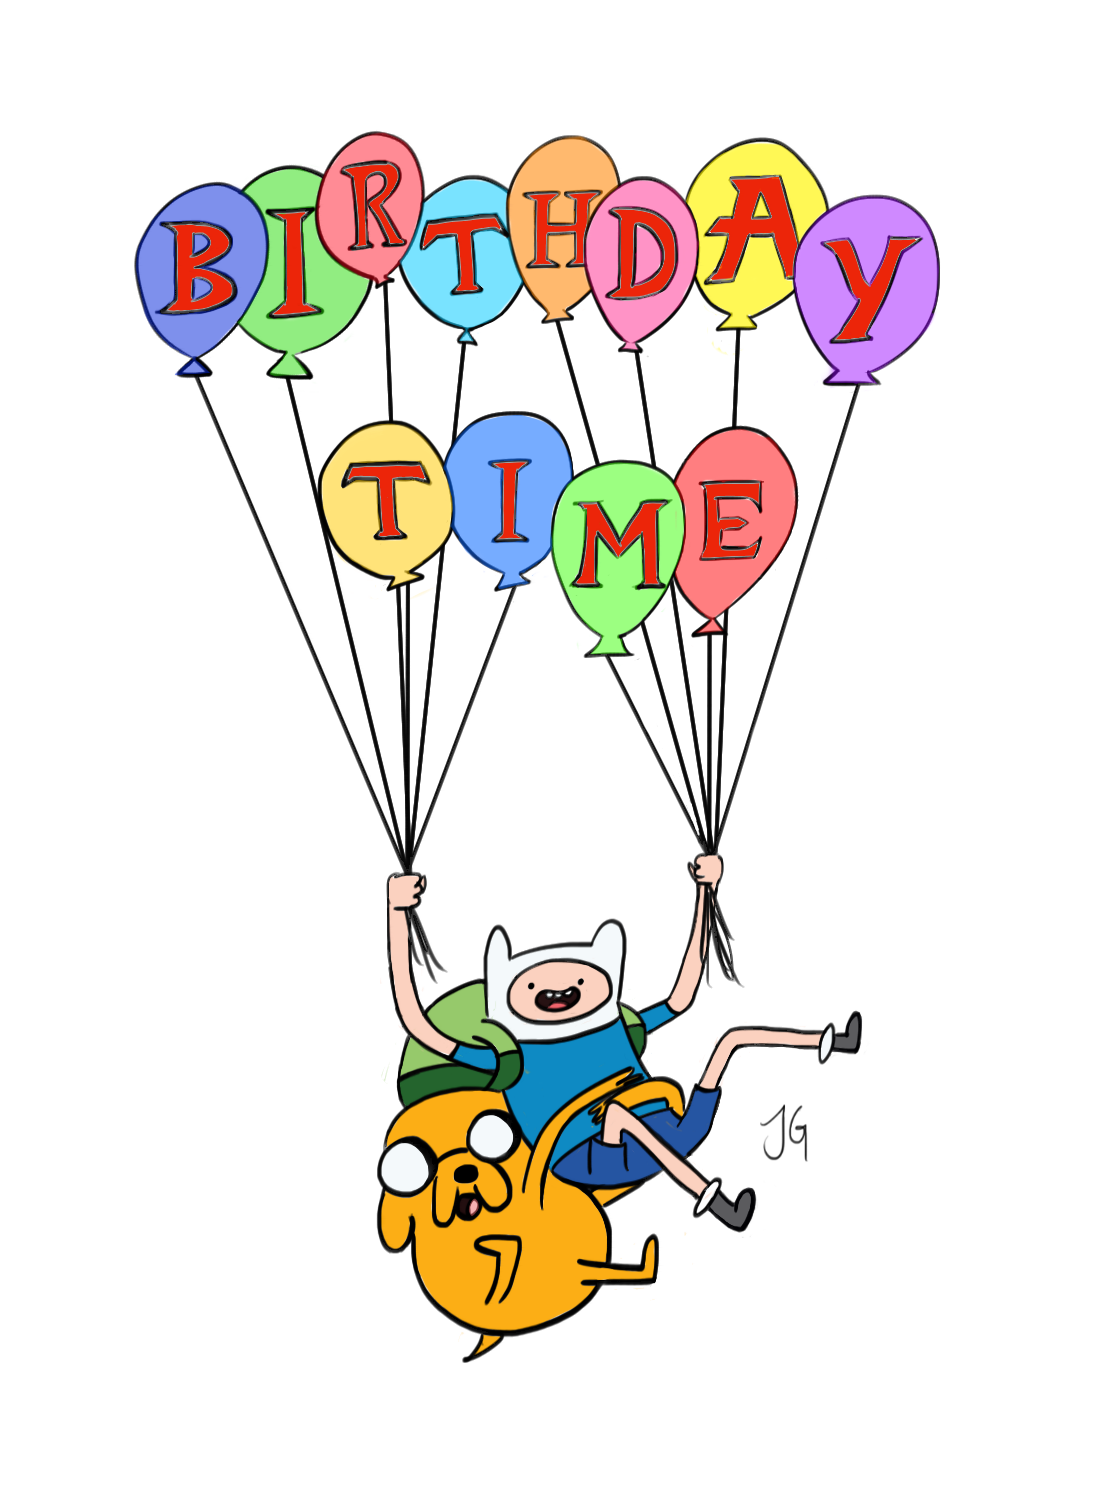 Adventure Time! Birthday Time by flyingscorpions on DeviantArt.